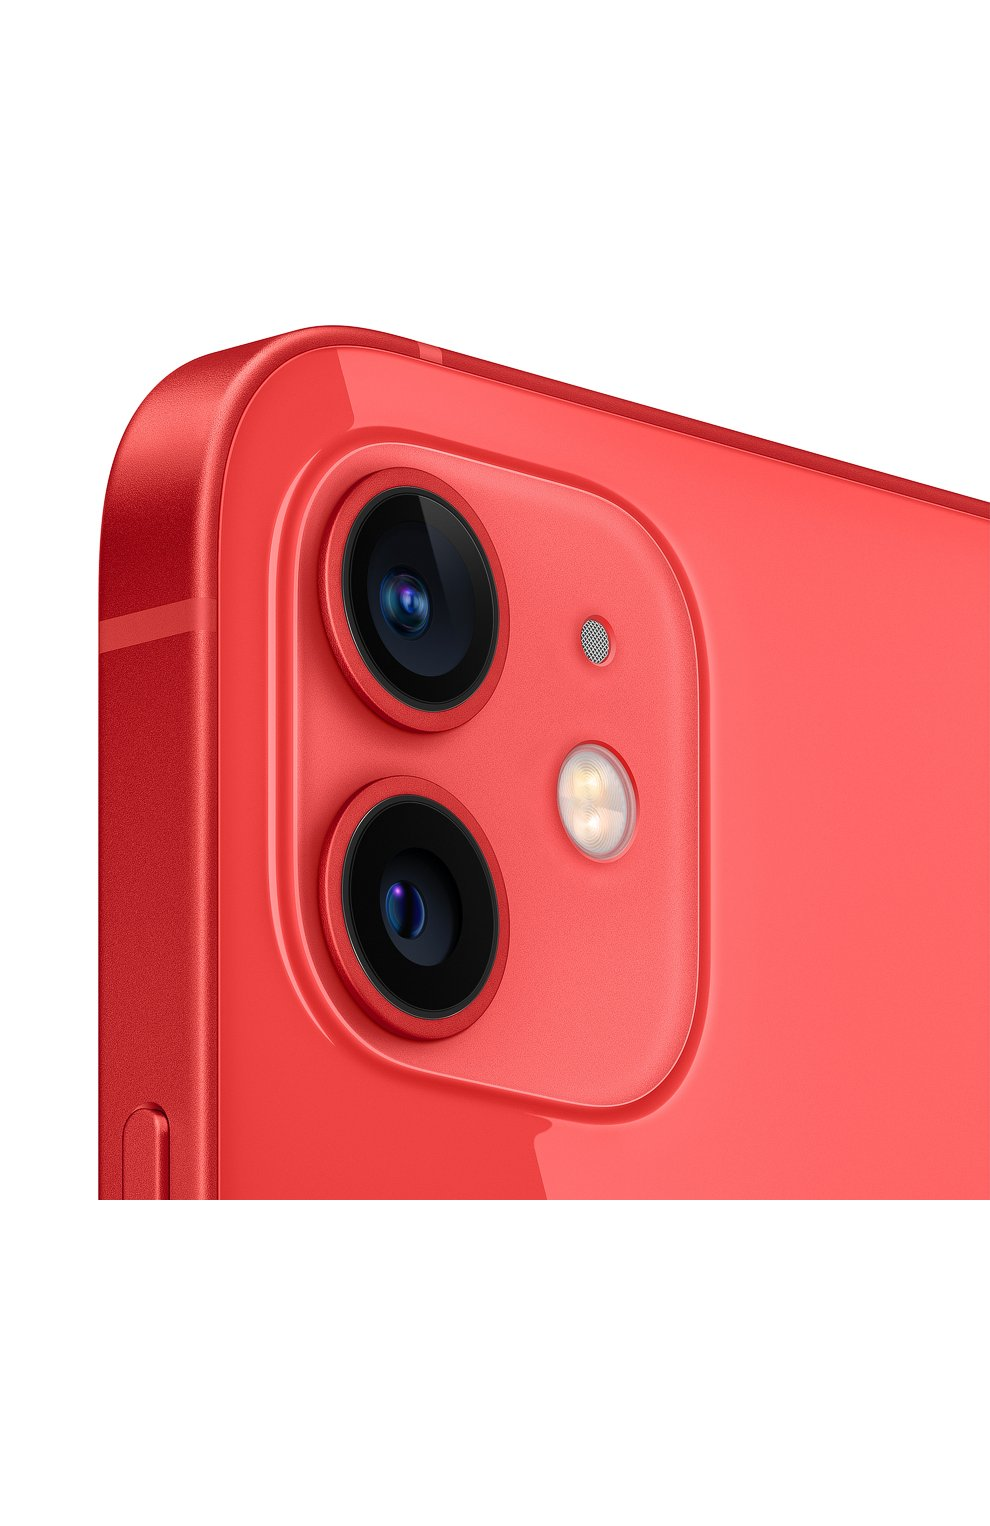 Iphone 12 64gb (product)red APPLE  (product)red цвета, арт. MGJ73RU/A | Фото 3